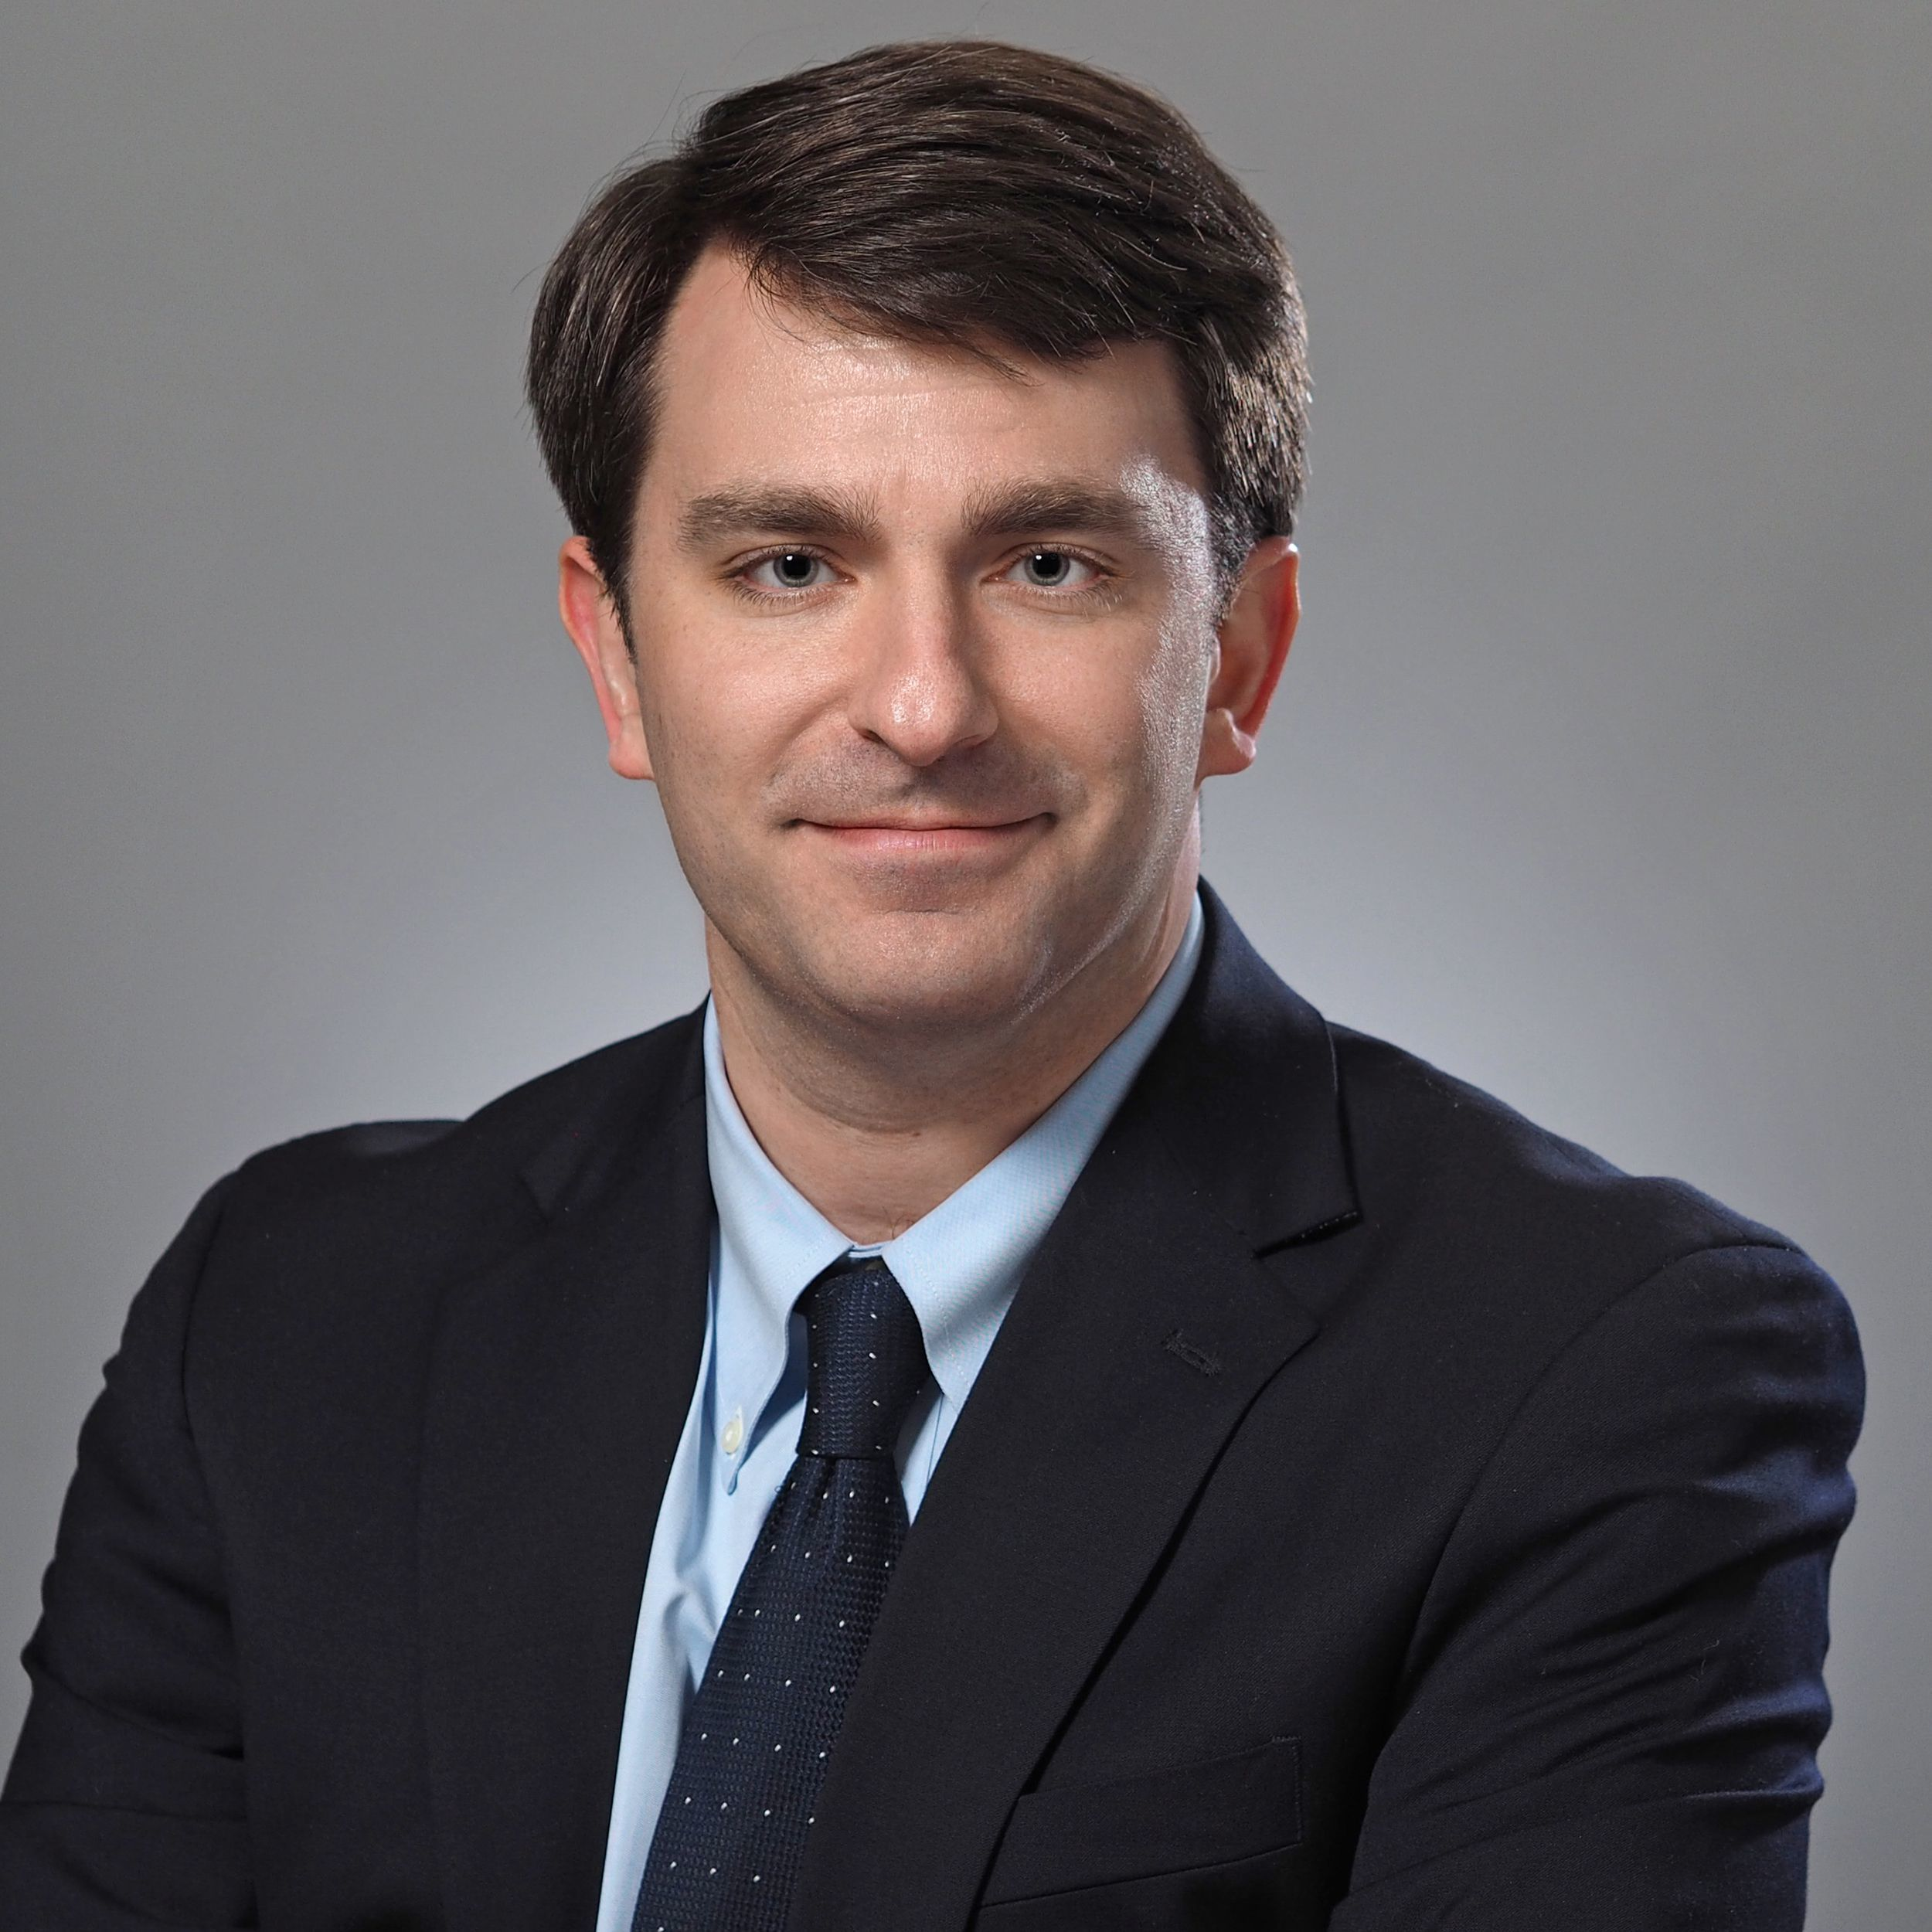 George Anesi is a pulmonary and critical care medicine physician at Penn Medicine.  He is also co-chair of the Penn Medicine Critical Care Alliance COVID-19 Committee.